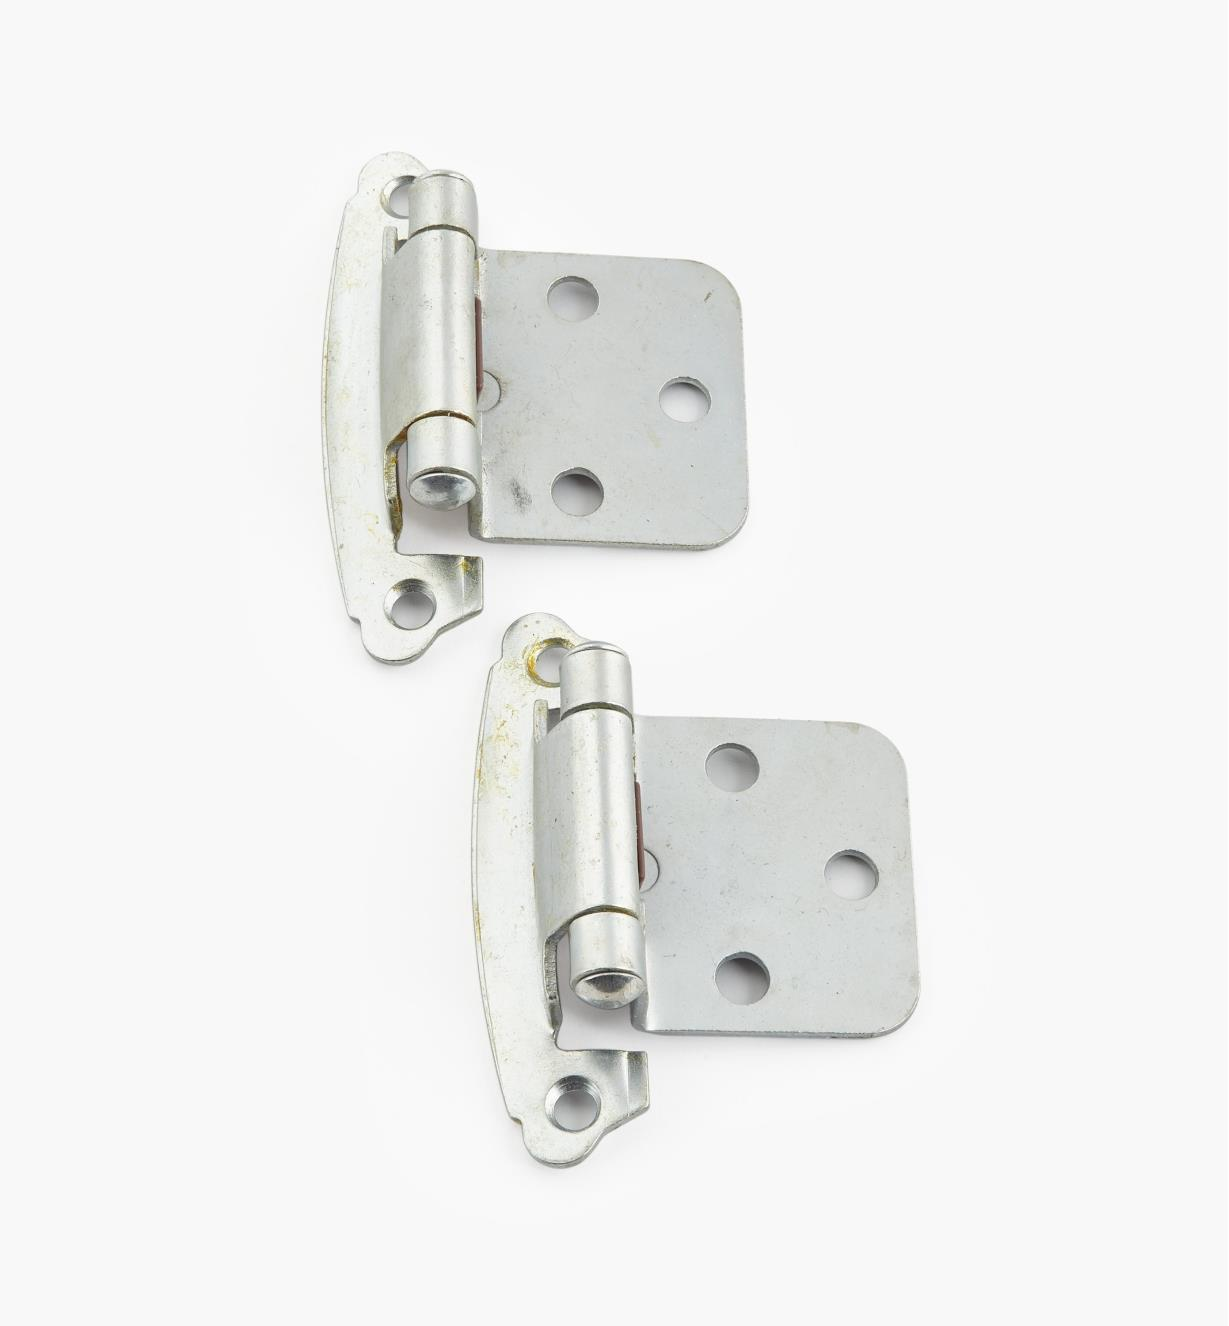 02H1373 - Satin Chrome Flush-Mount Self-Closing Hinge, Pair